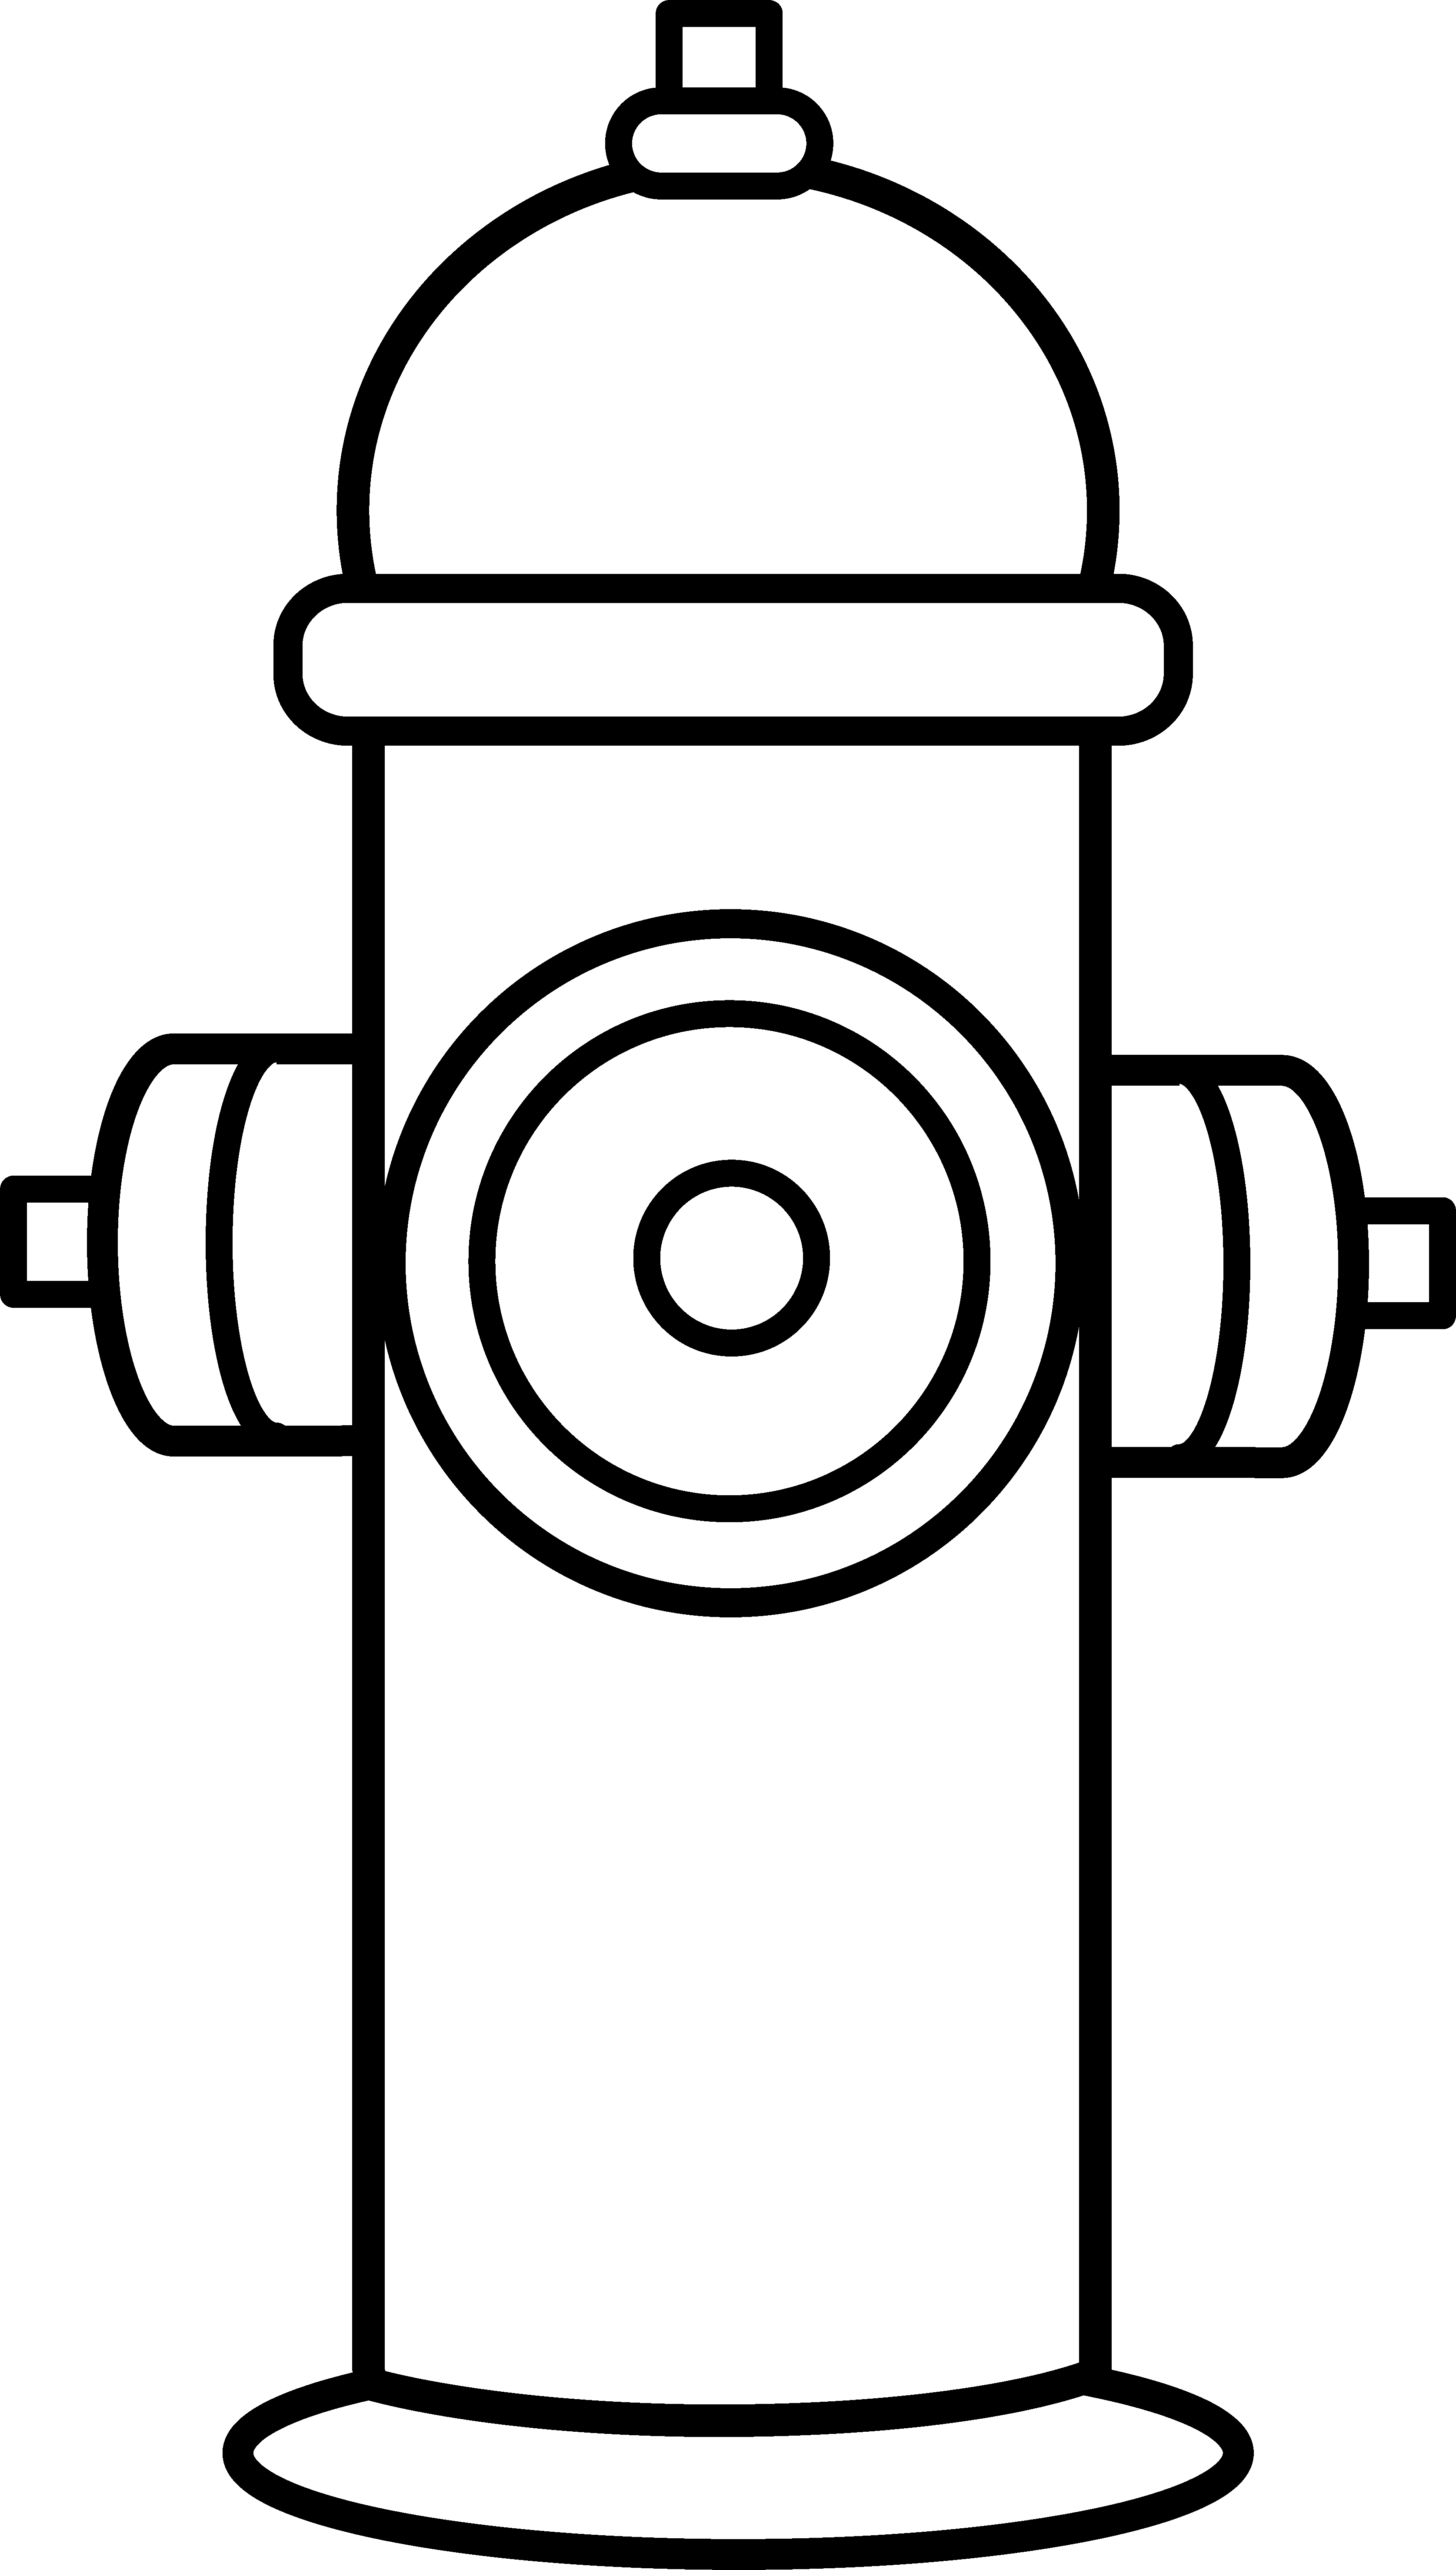 fire hydrant coloring page fire hydrant coloring page free clip art fire hydrant page coloring